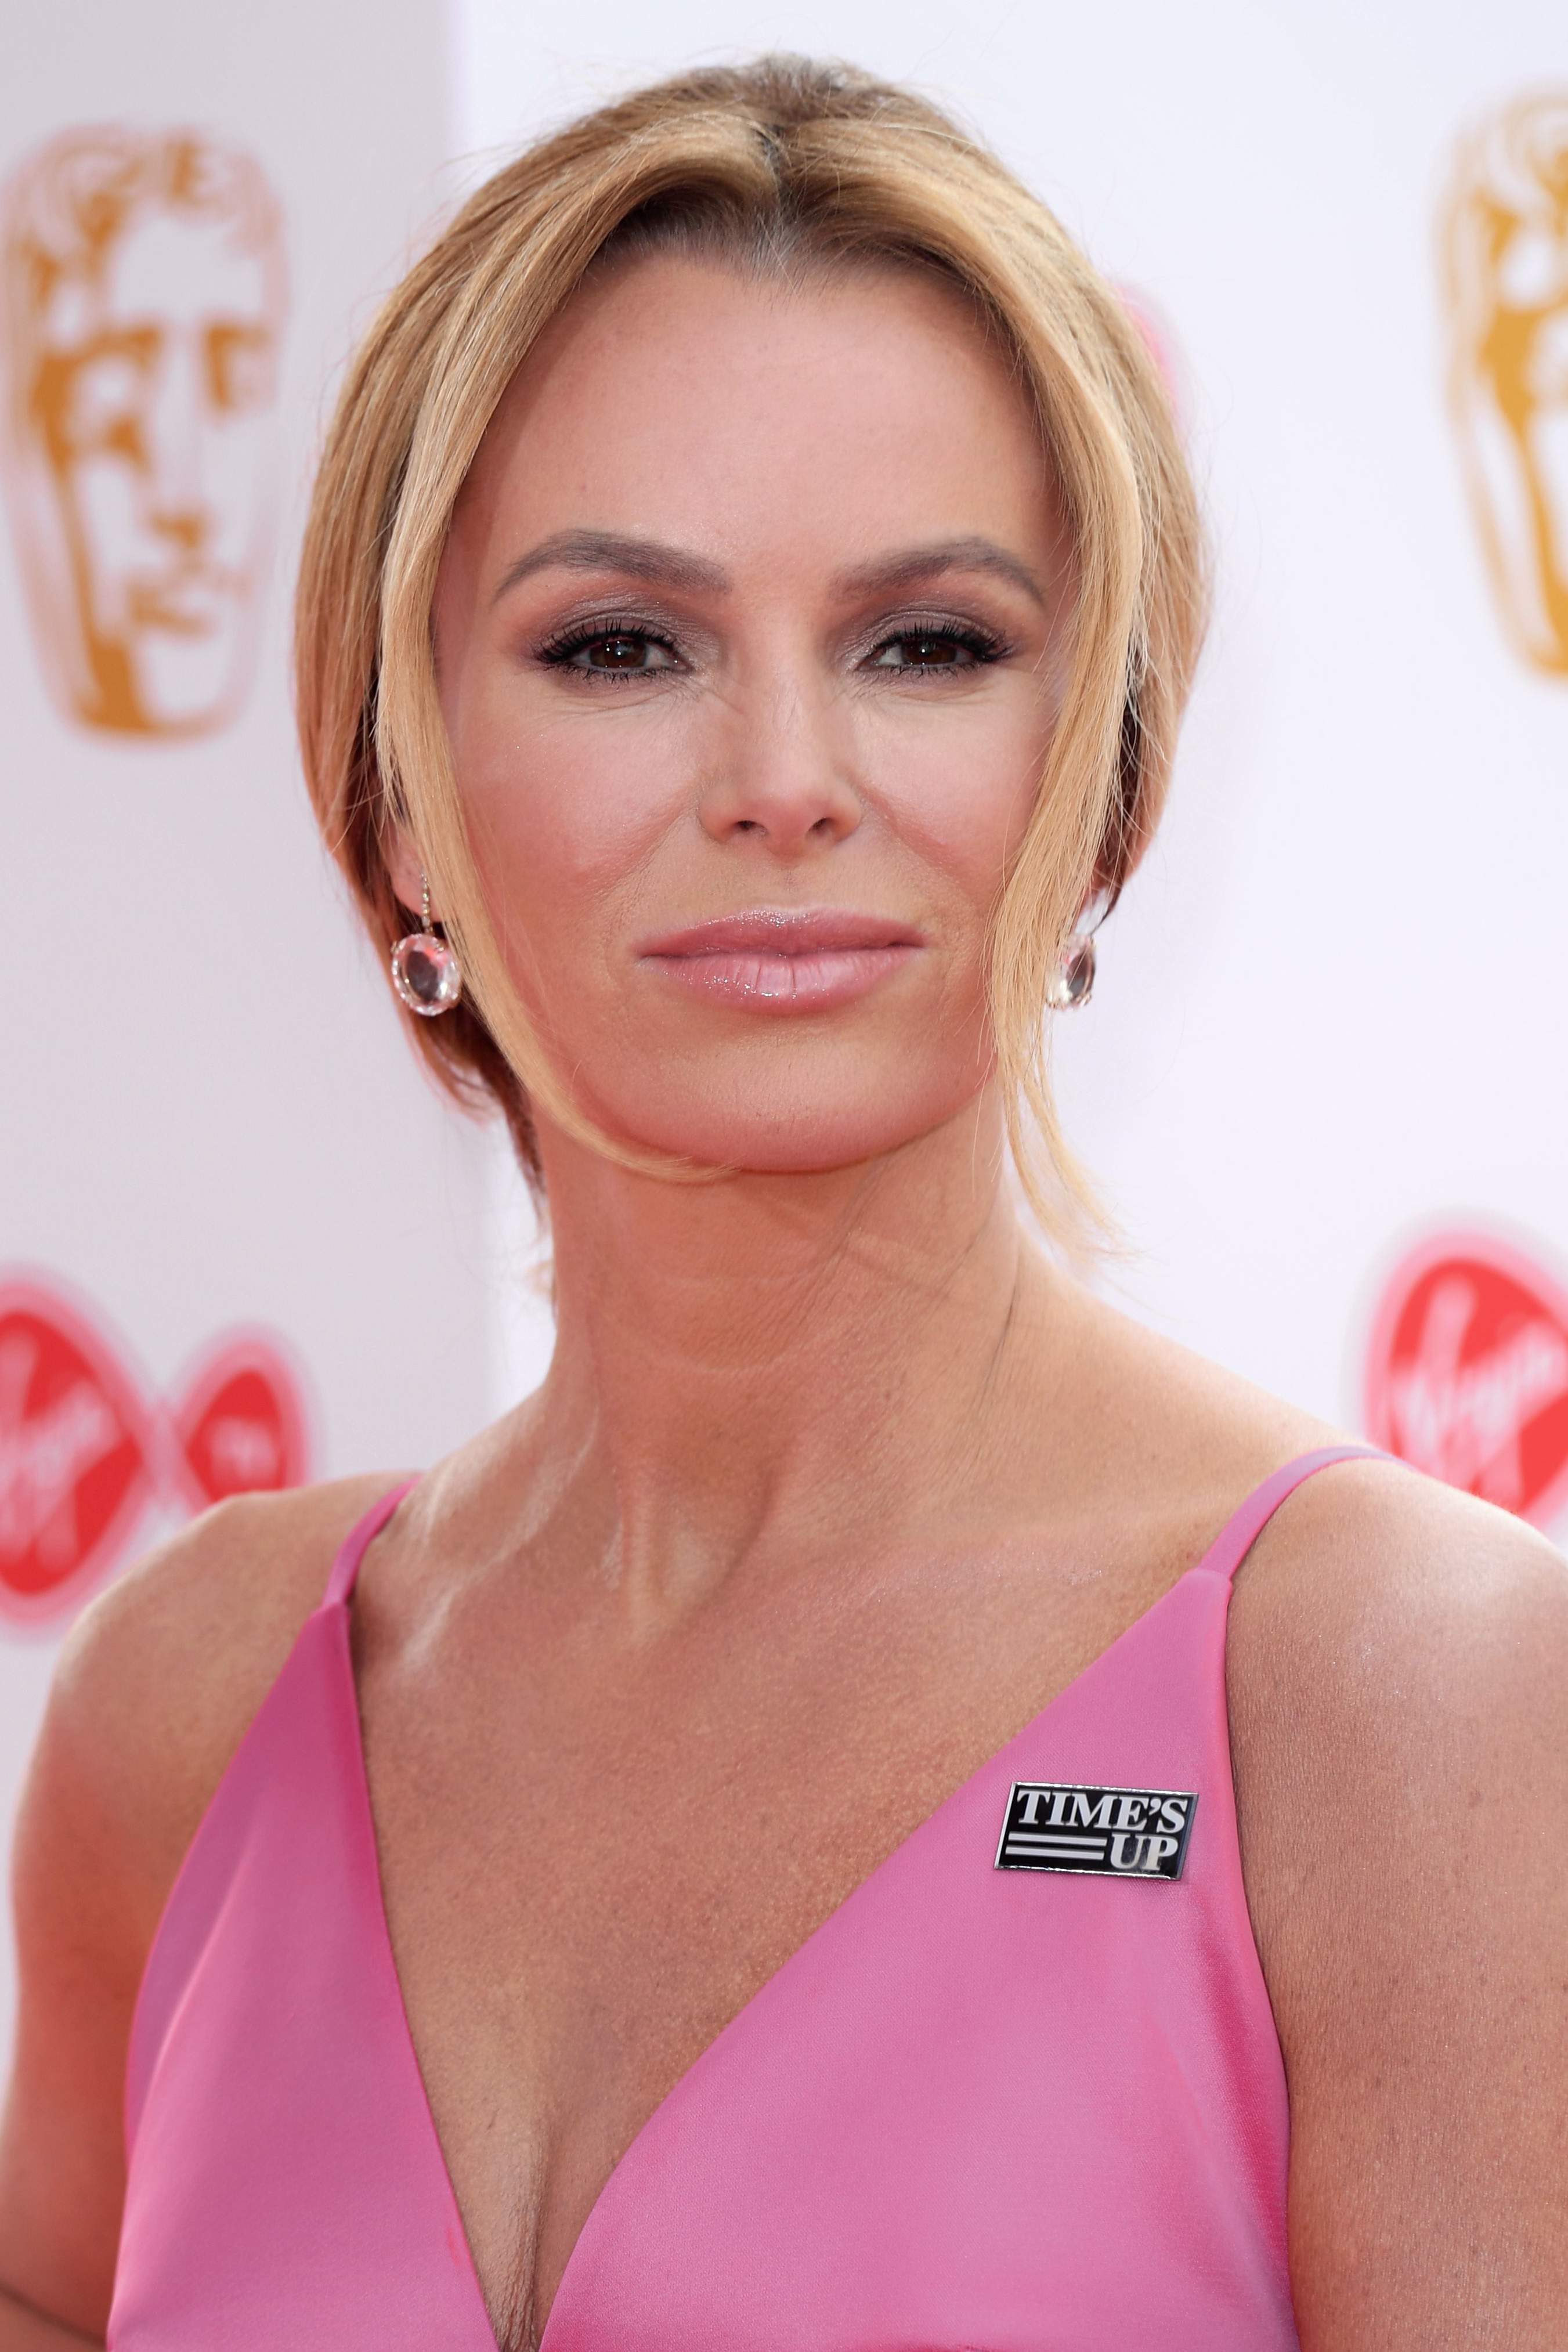 Fotos Amanda Holden nude photos 2019